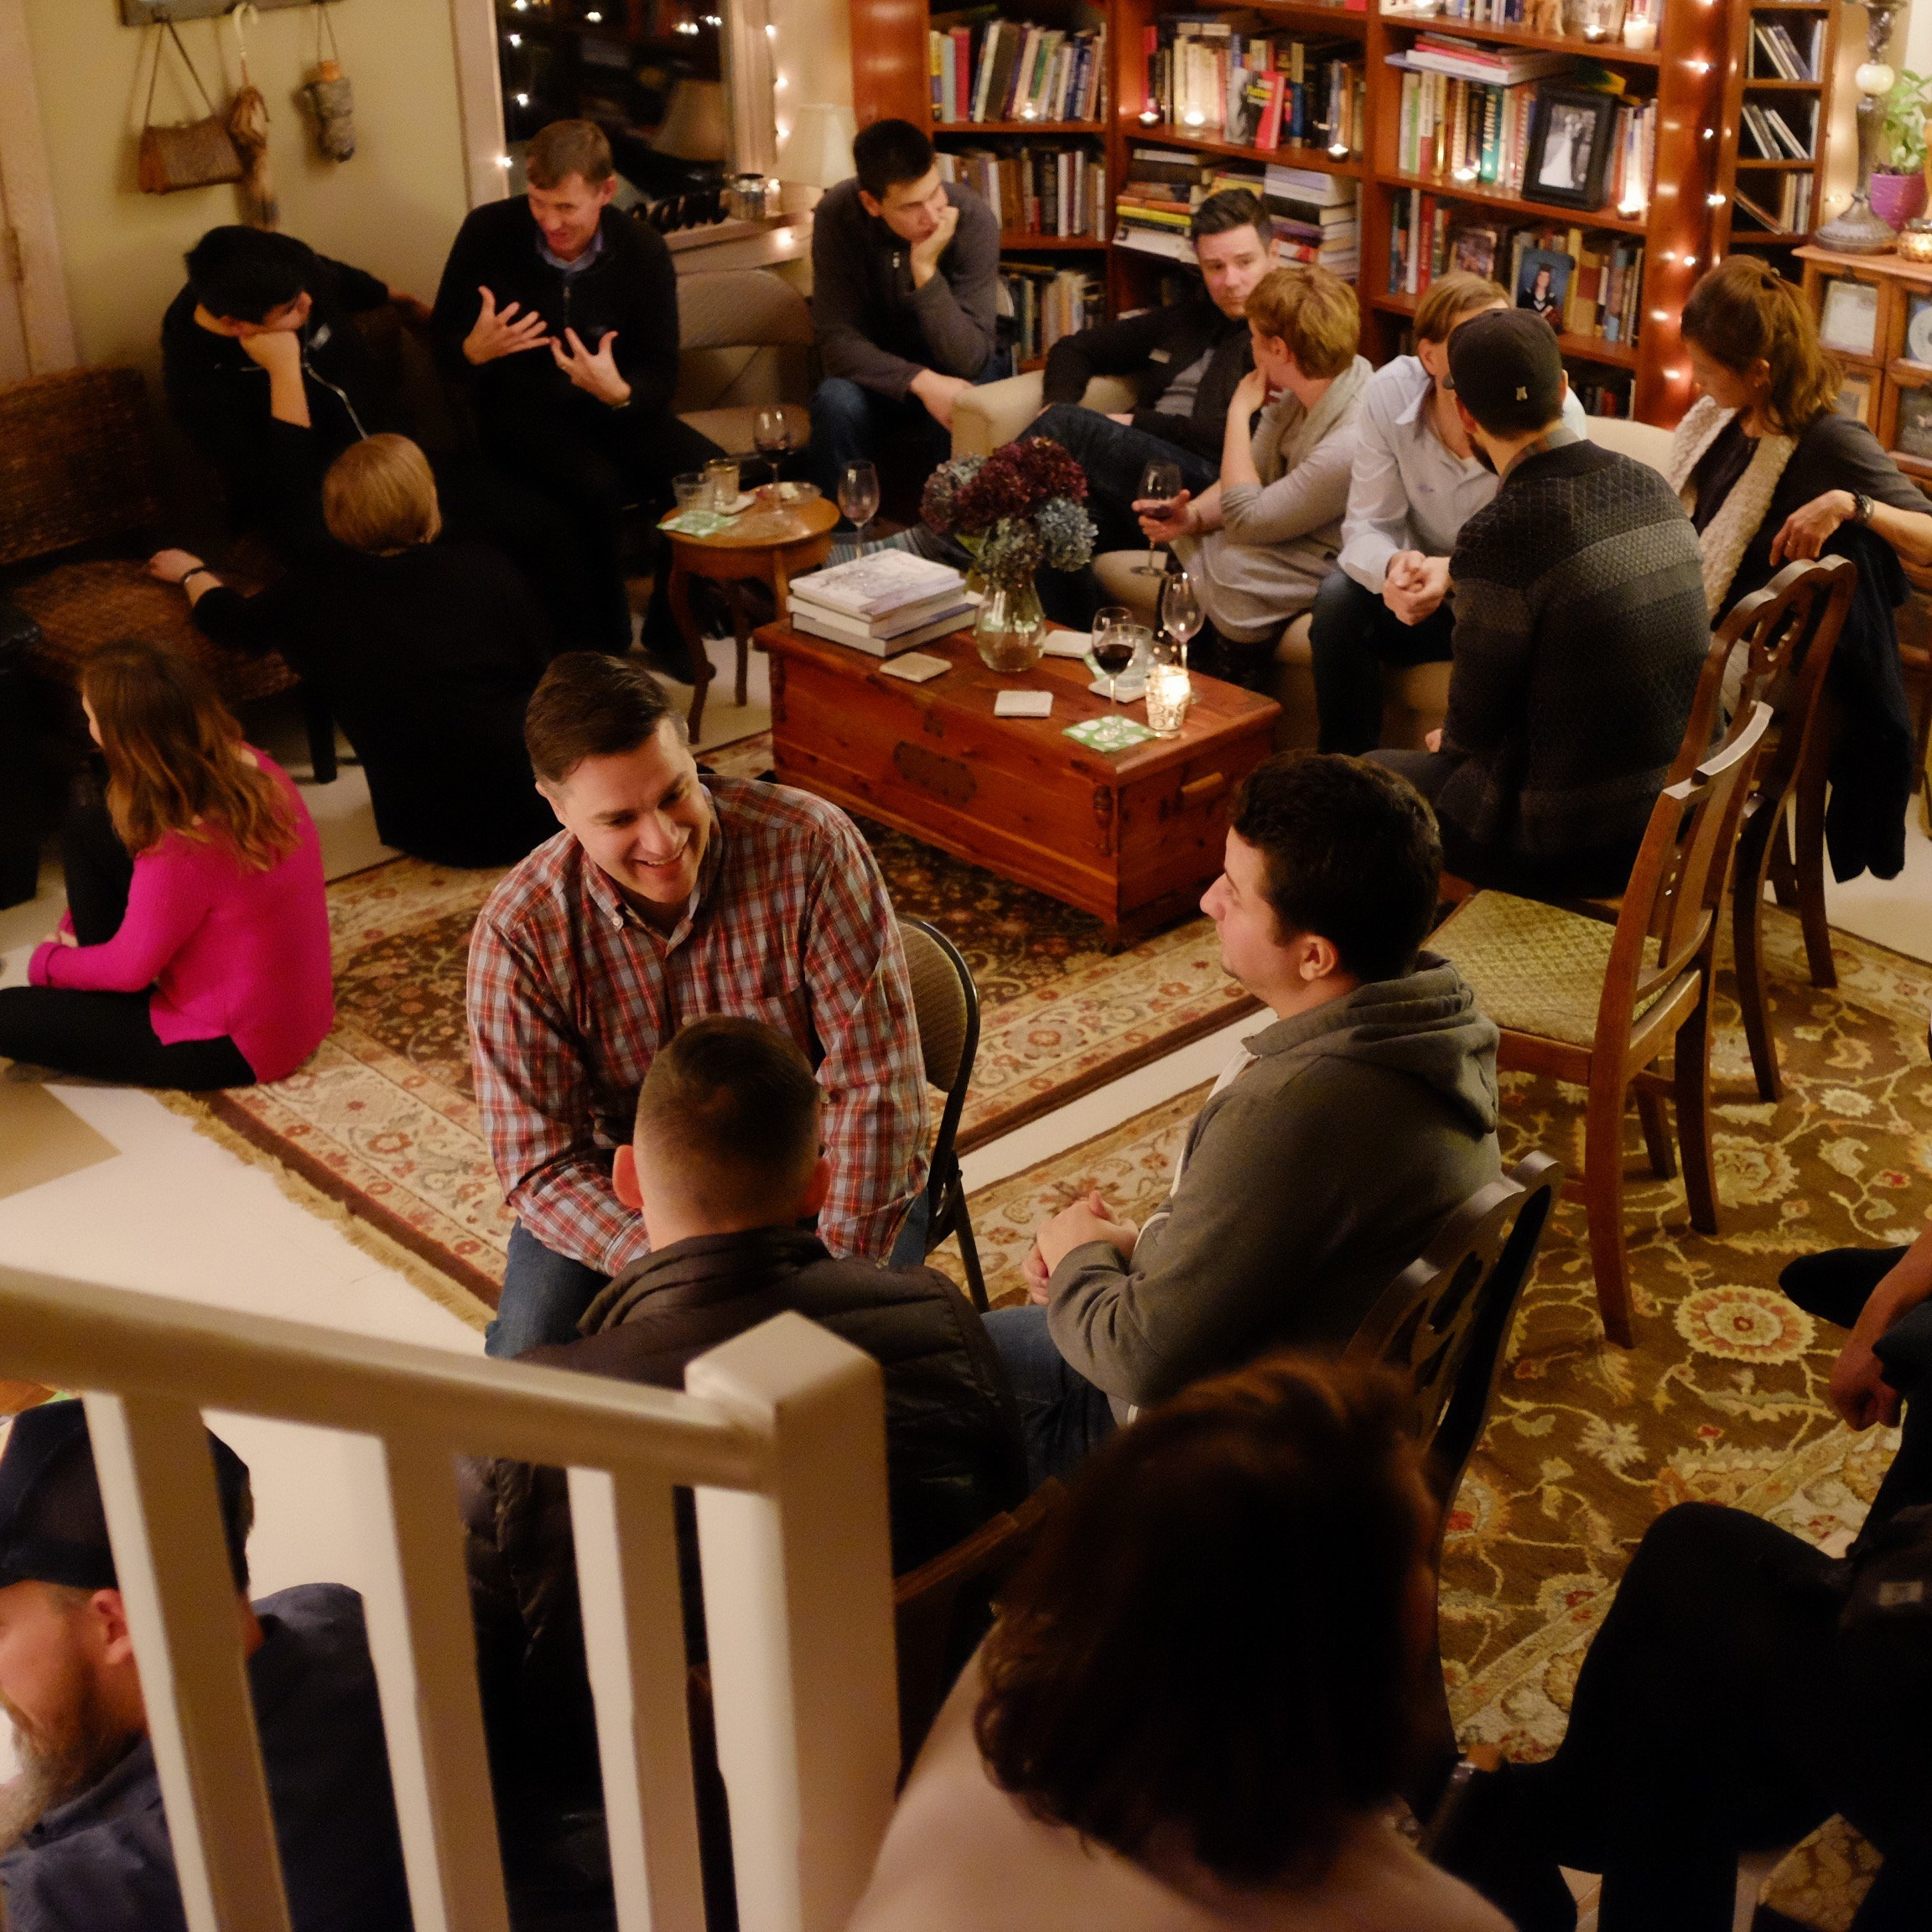 People gathered in living room square.jpg